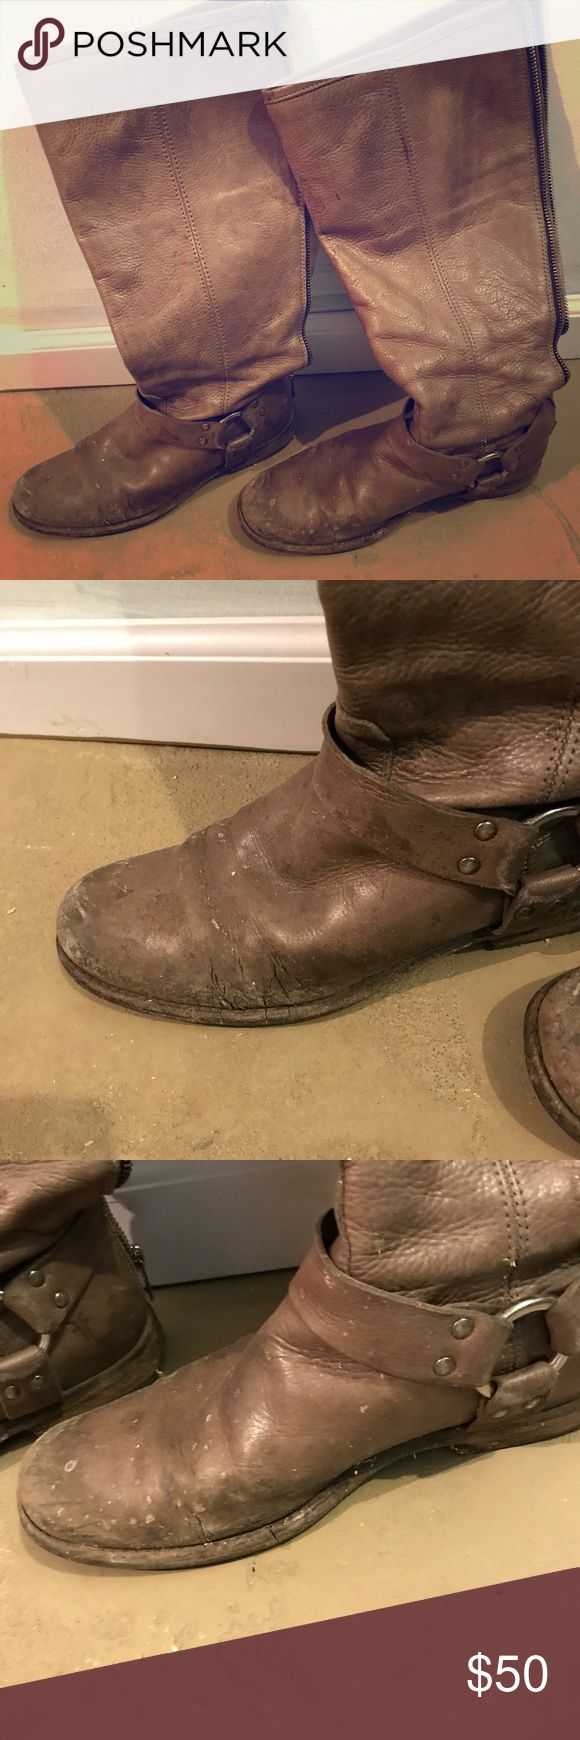 Worn frye boots. Phillip harness tall frye boots. Make sure to look at all the pictures before purchasing Frye Shoes Heeled Boots